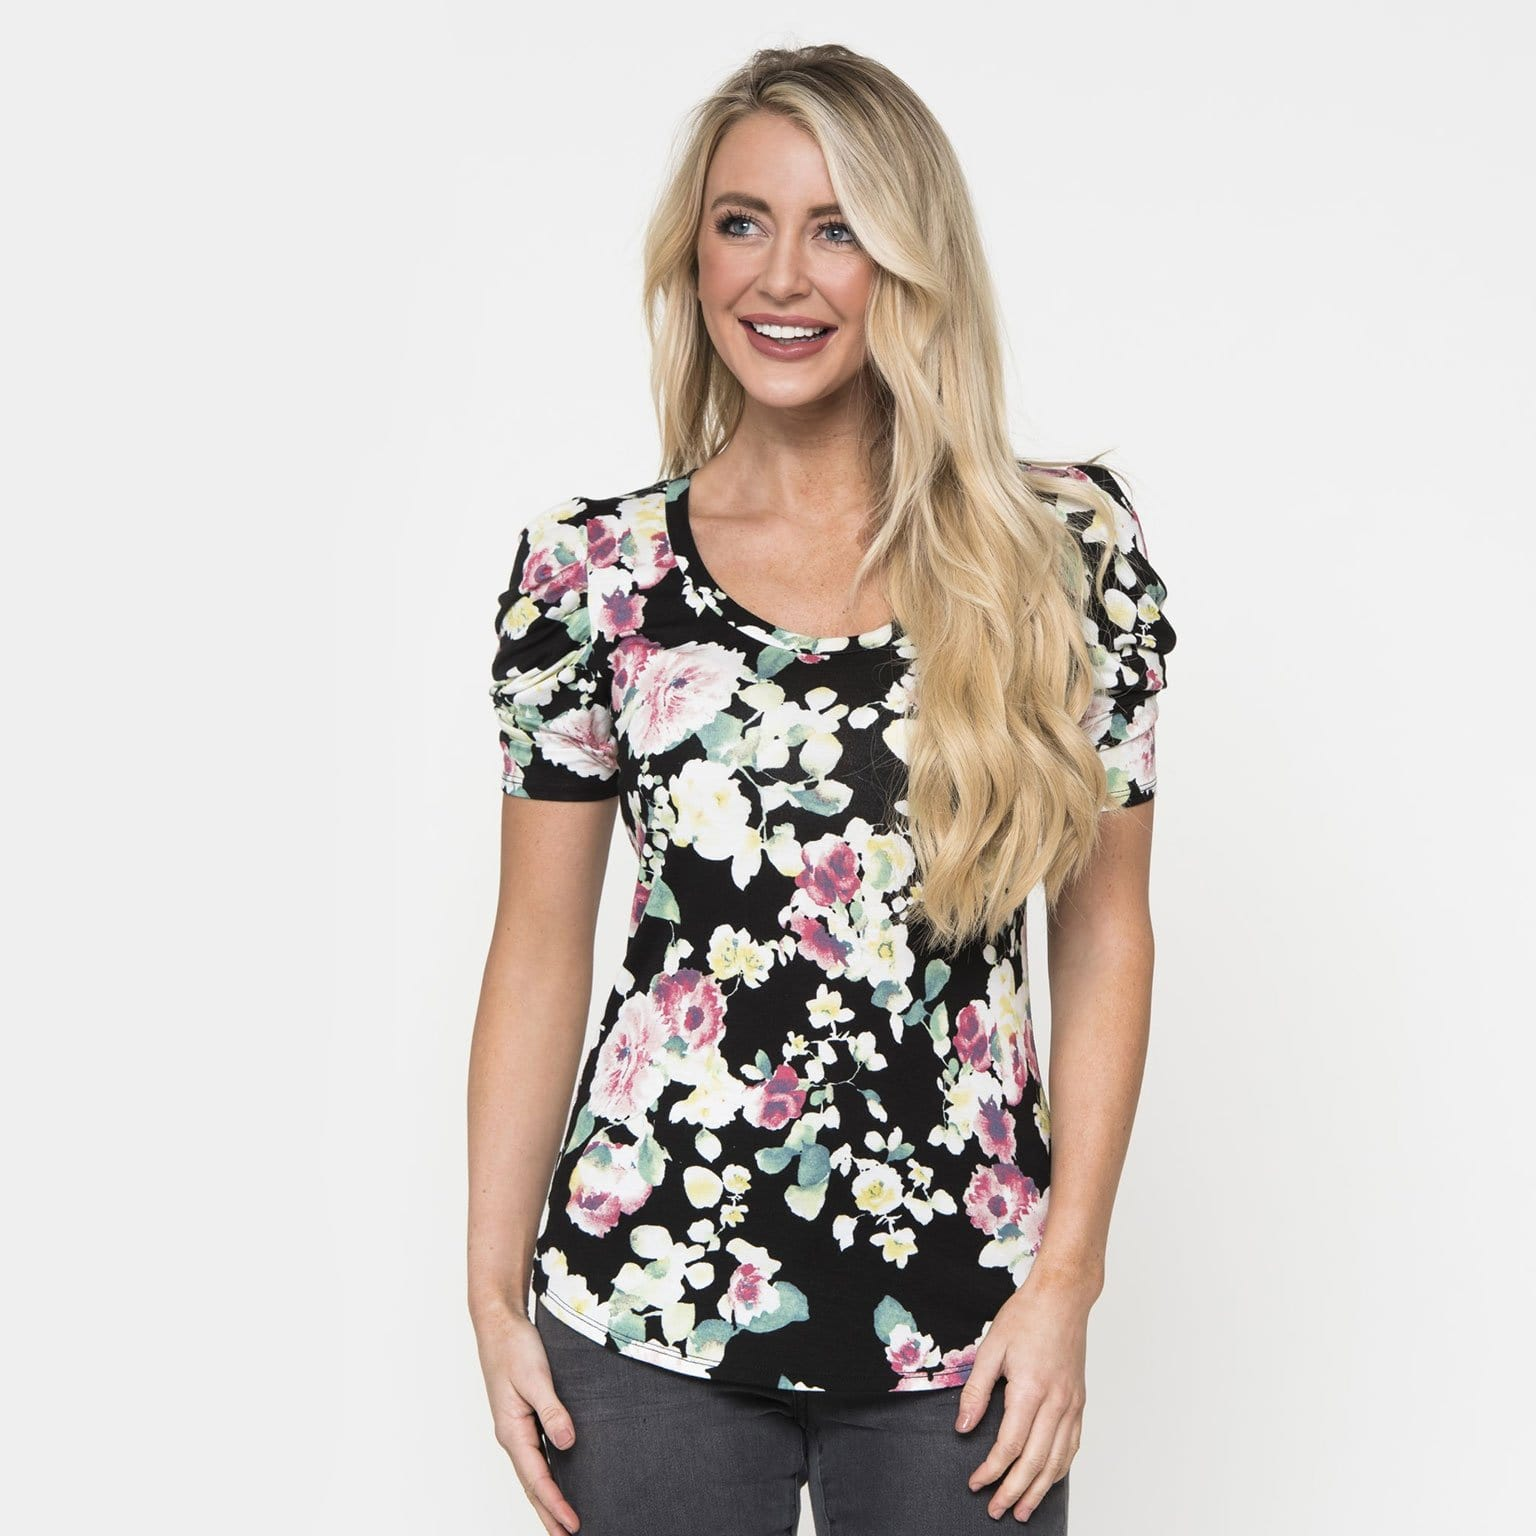 Fun with Floral Top